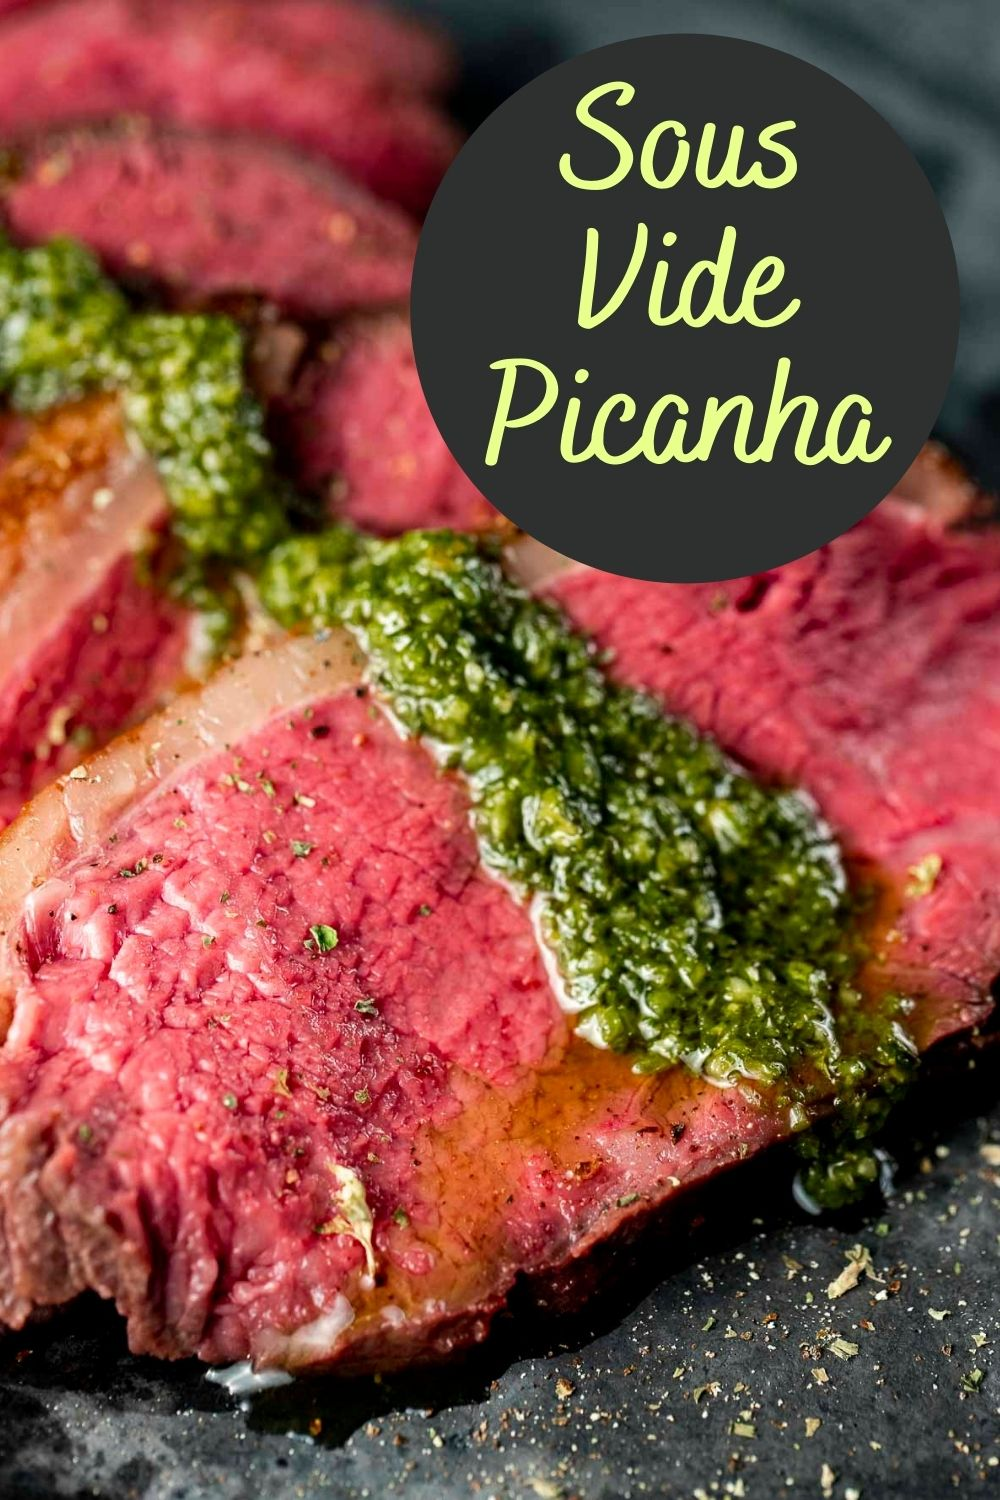 Sous Vide Picanha